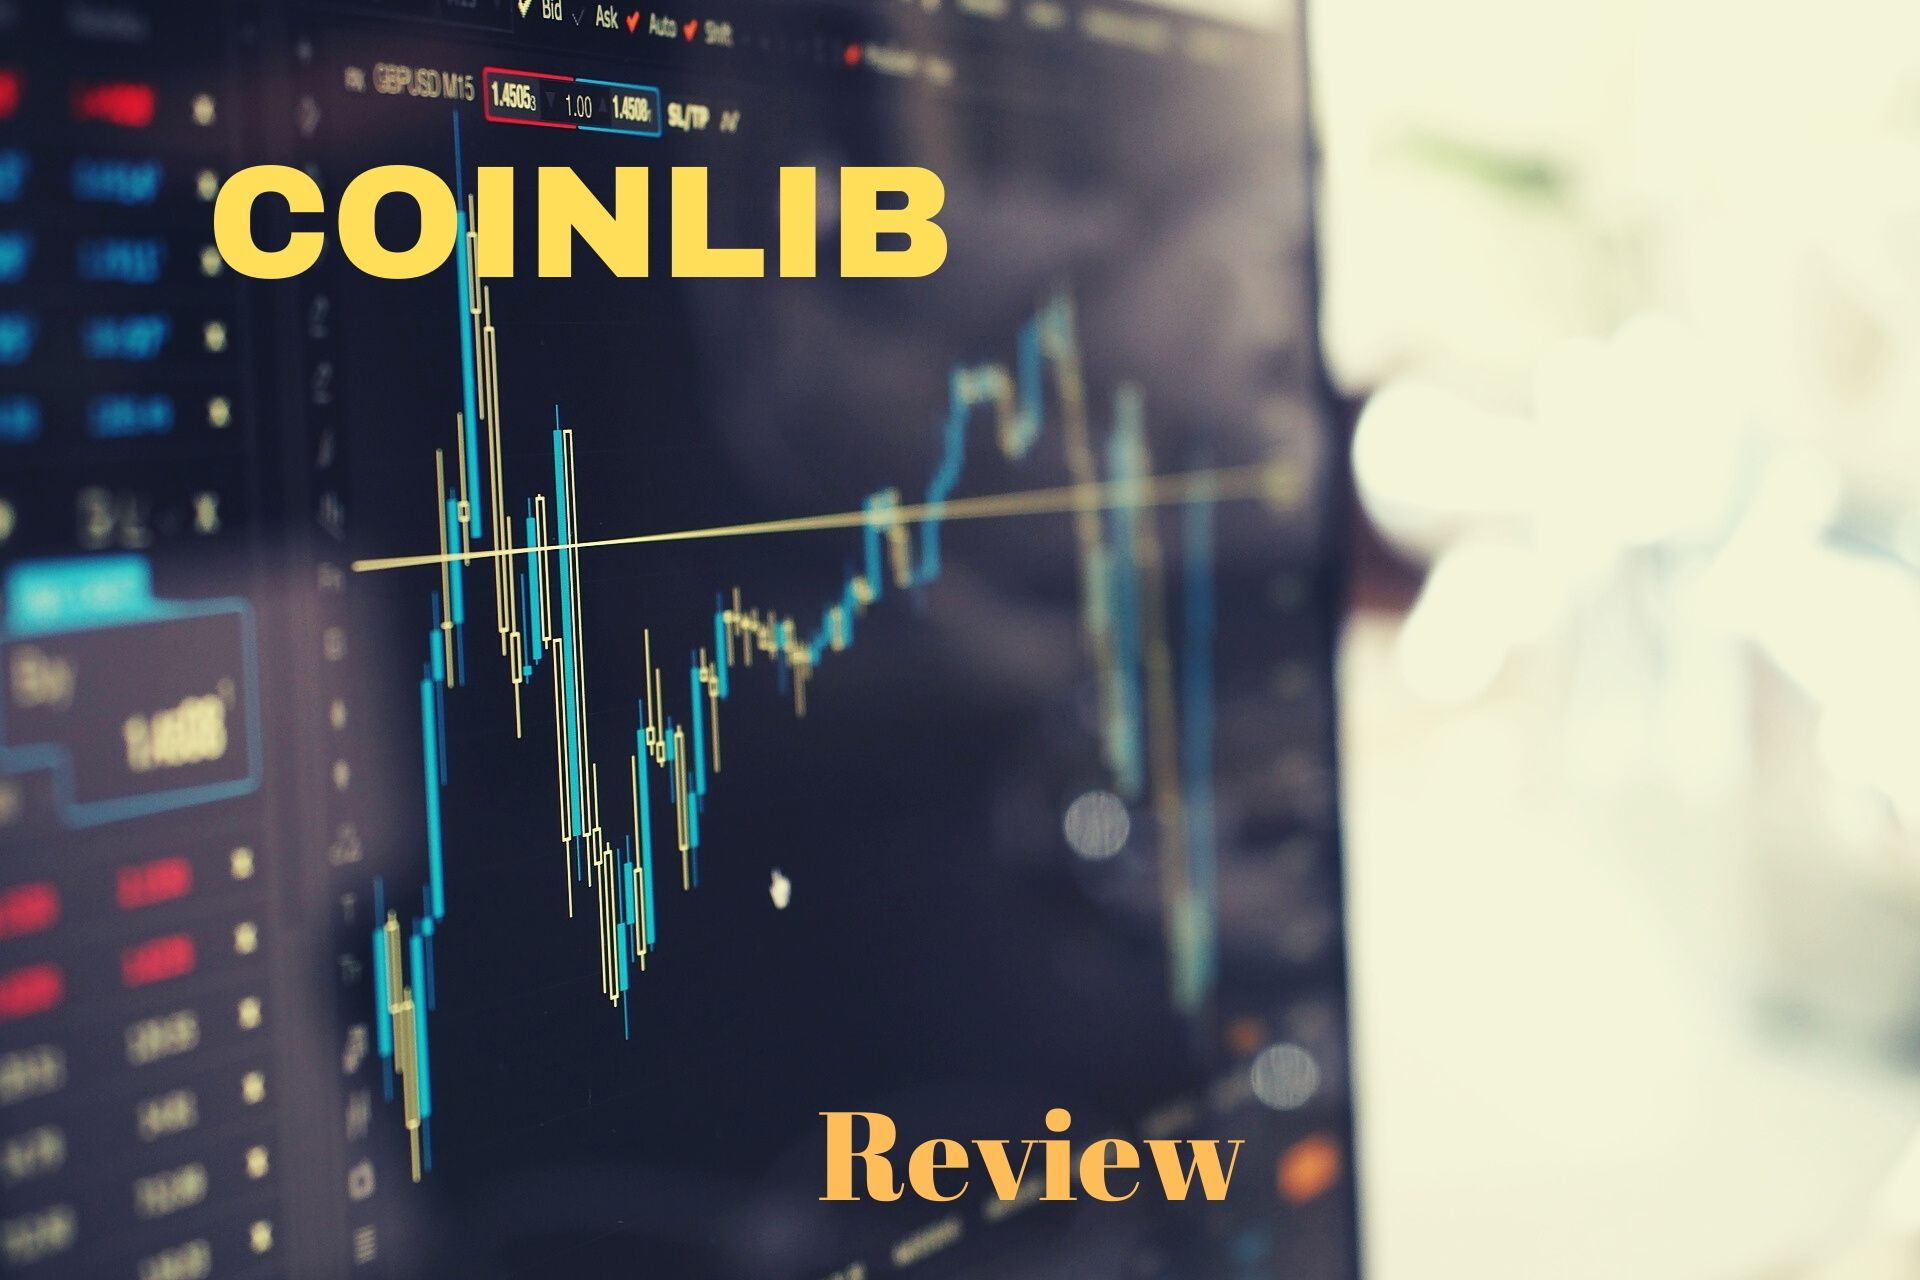 Coinlib platform review